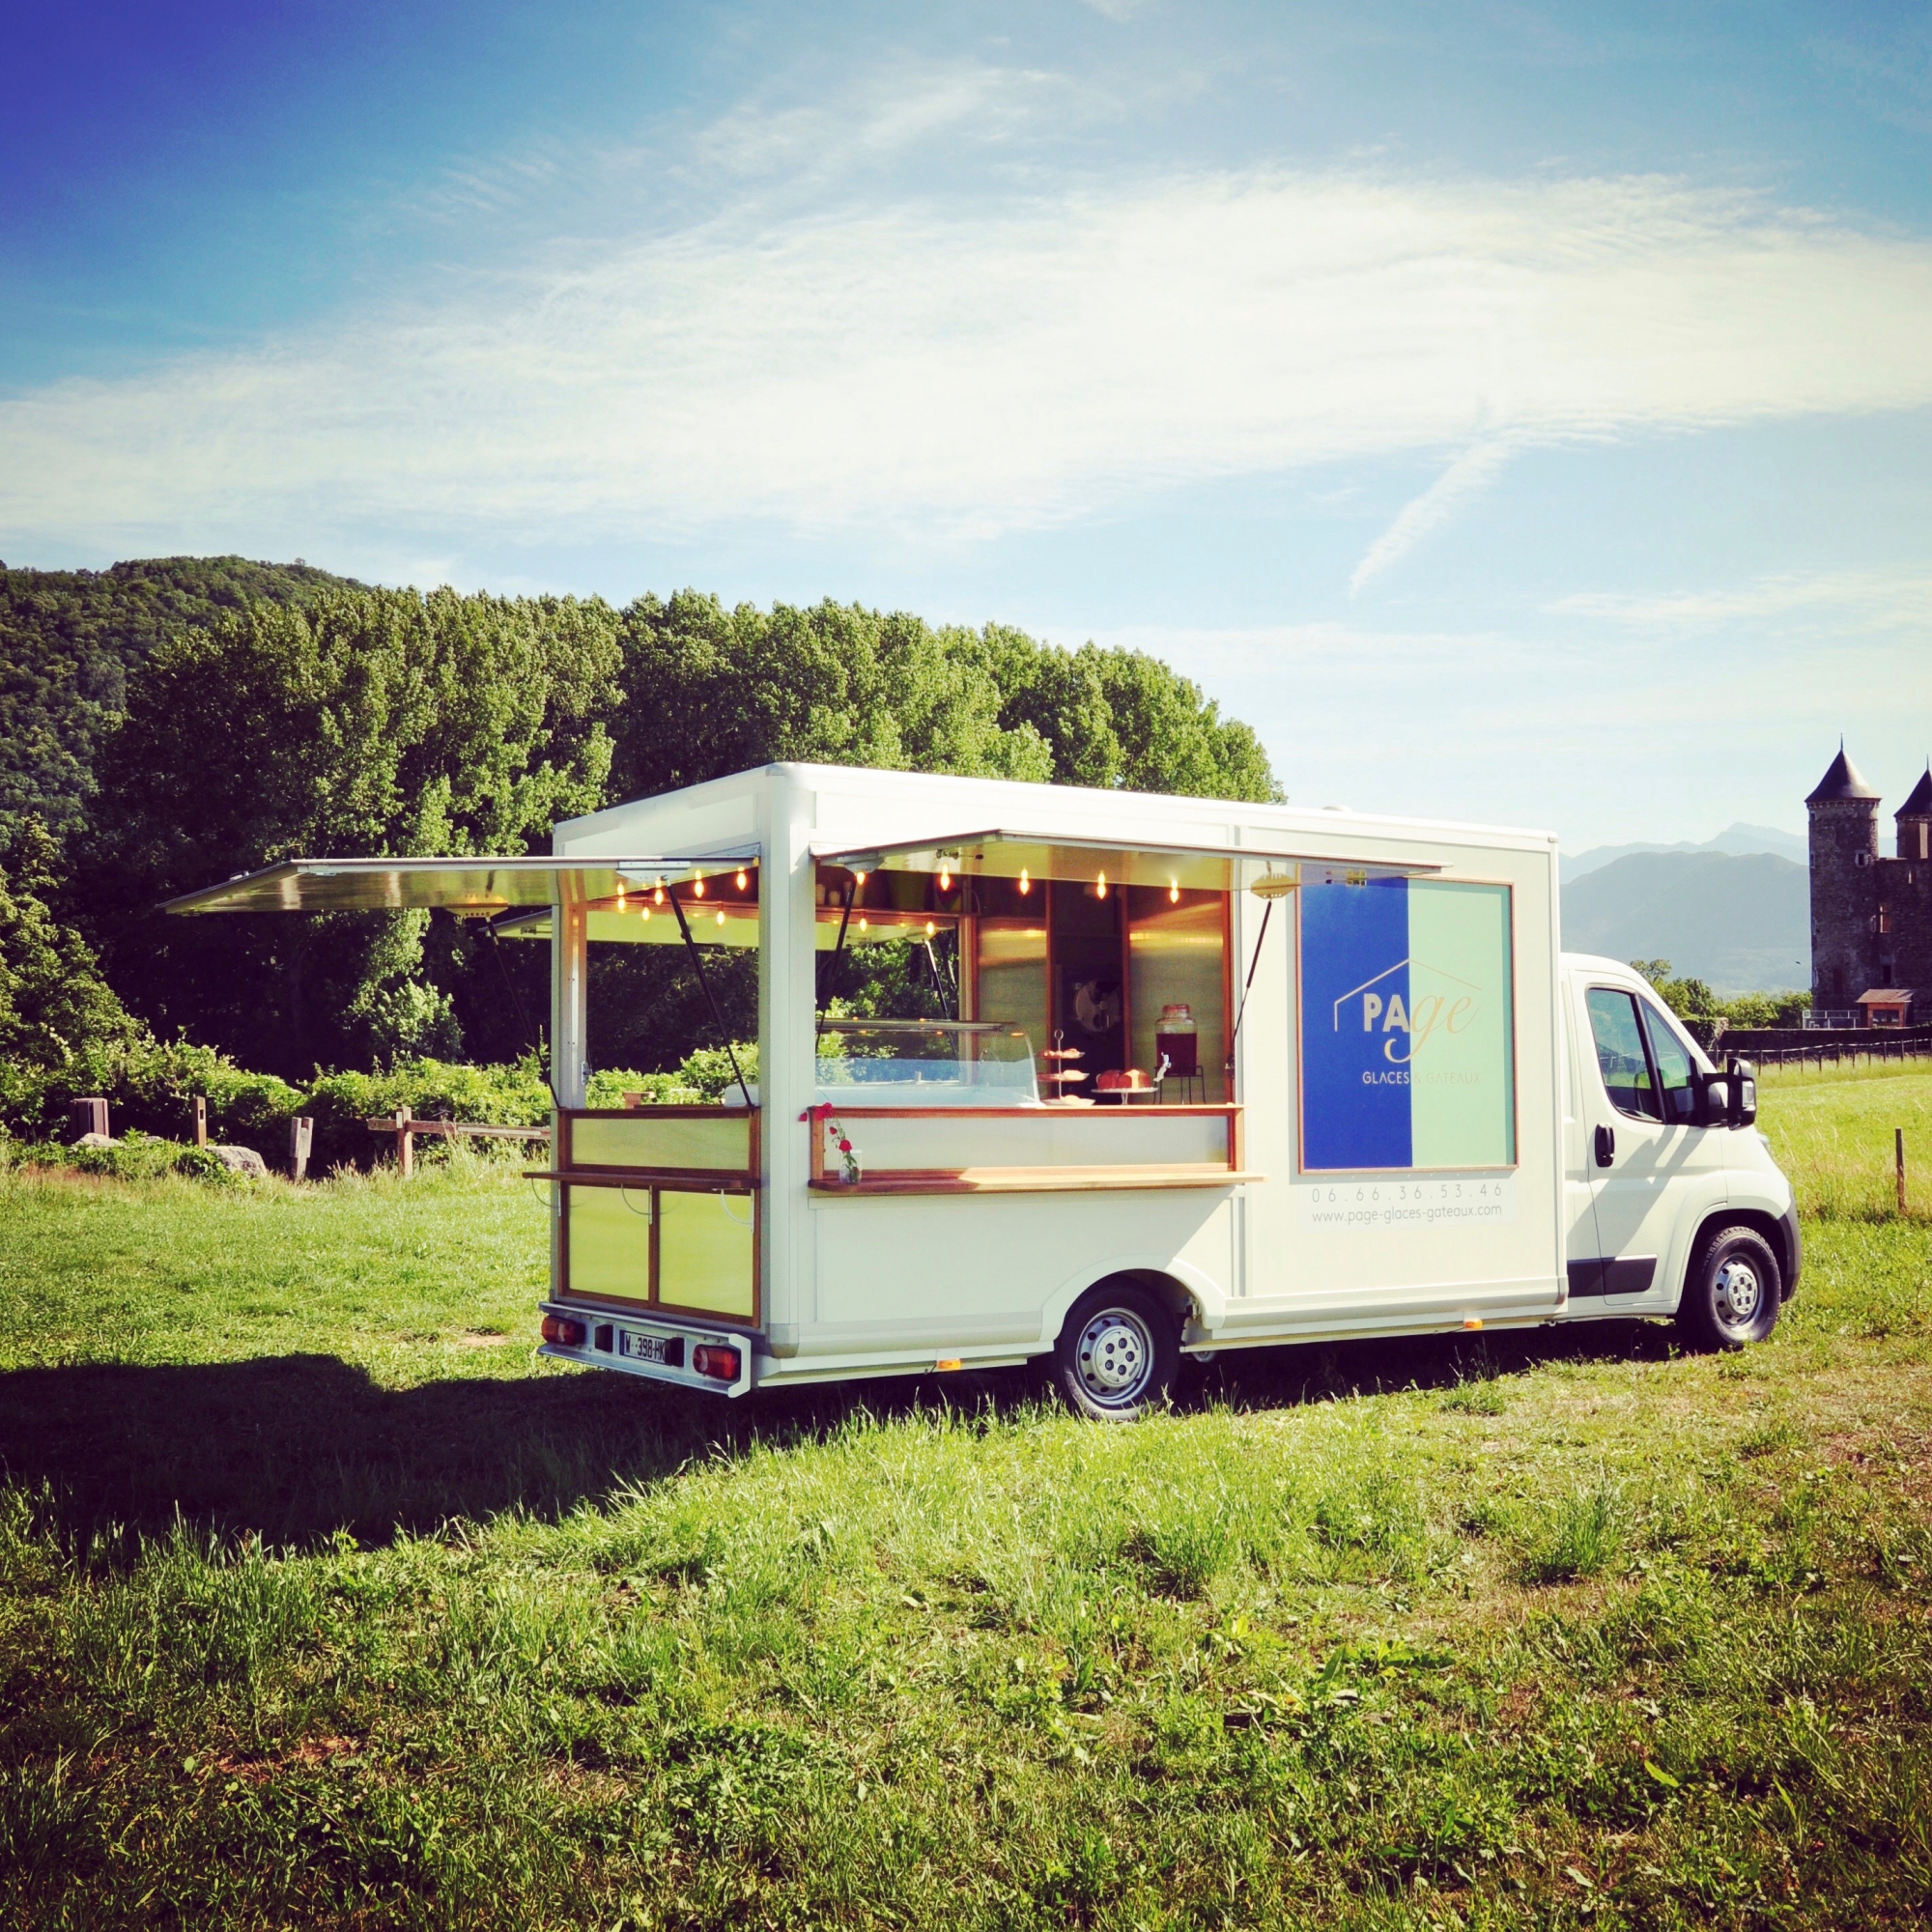 PAGE, Glaces & Gateaux, foodtruck